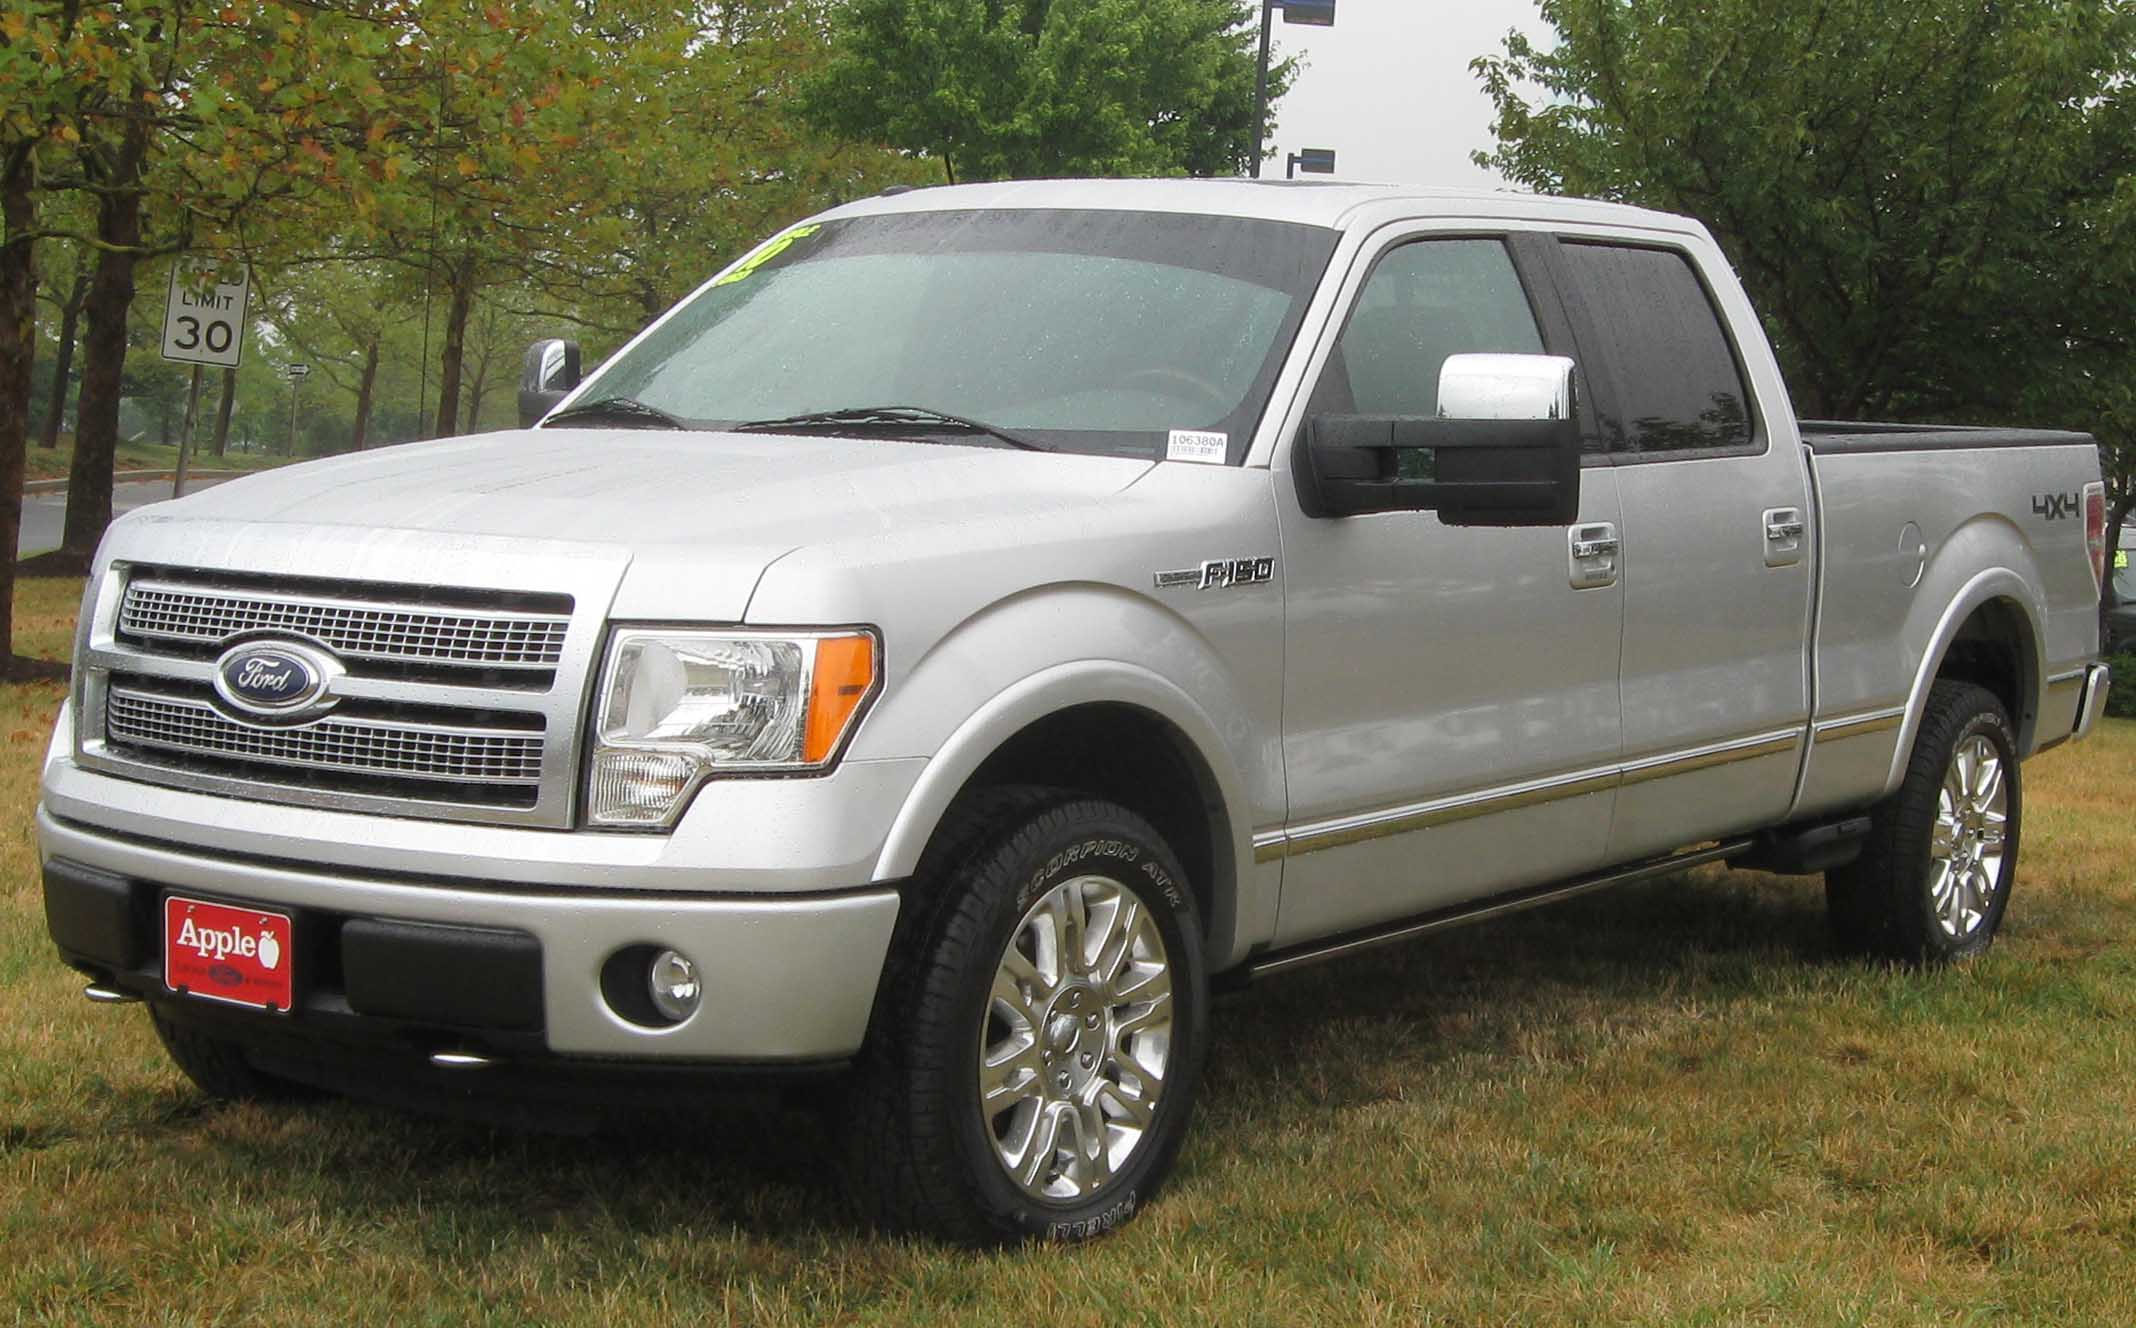 Description 2010 Ford F-150 Platinum -- 07-10-2010.jpg